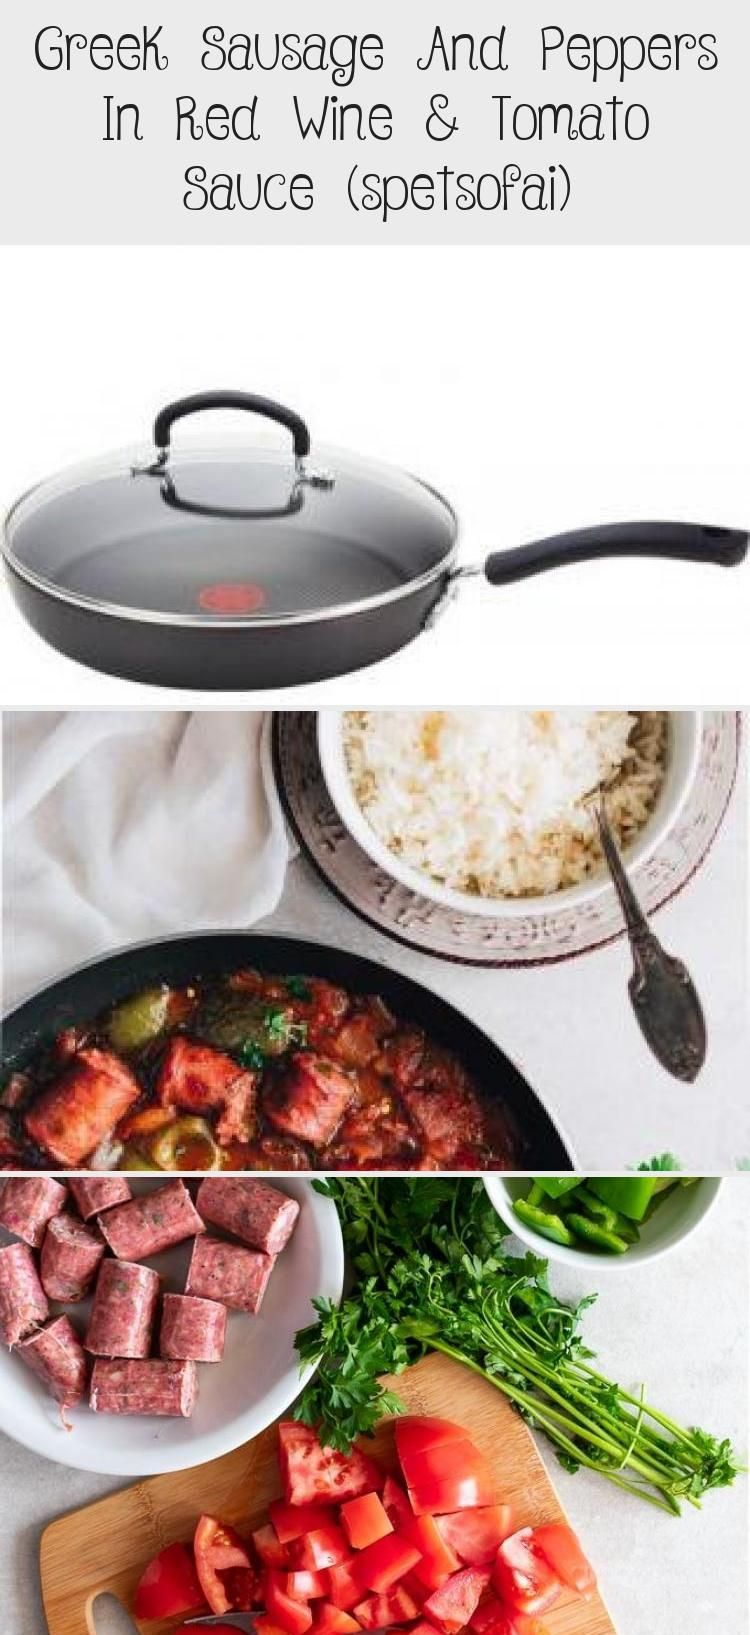 Greek Sausage And Peppers In Red Wine & Tomato Sauce (spetsofai) – Recipes For Kids